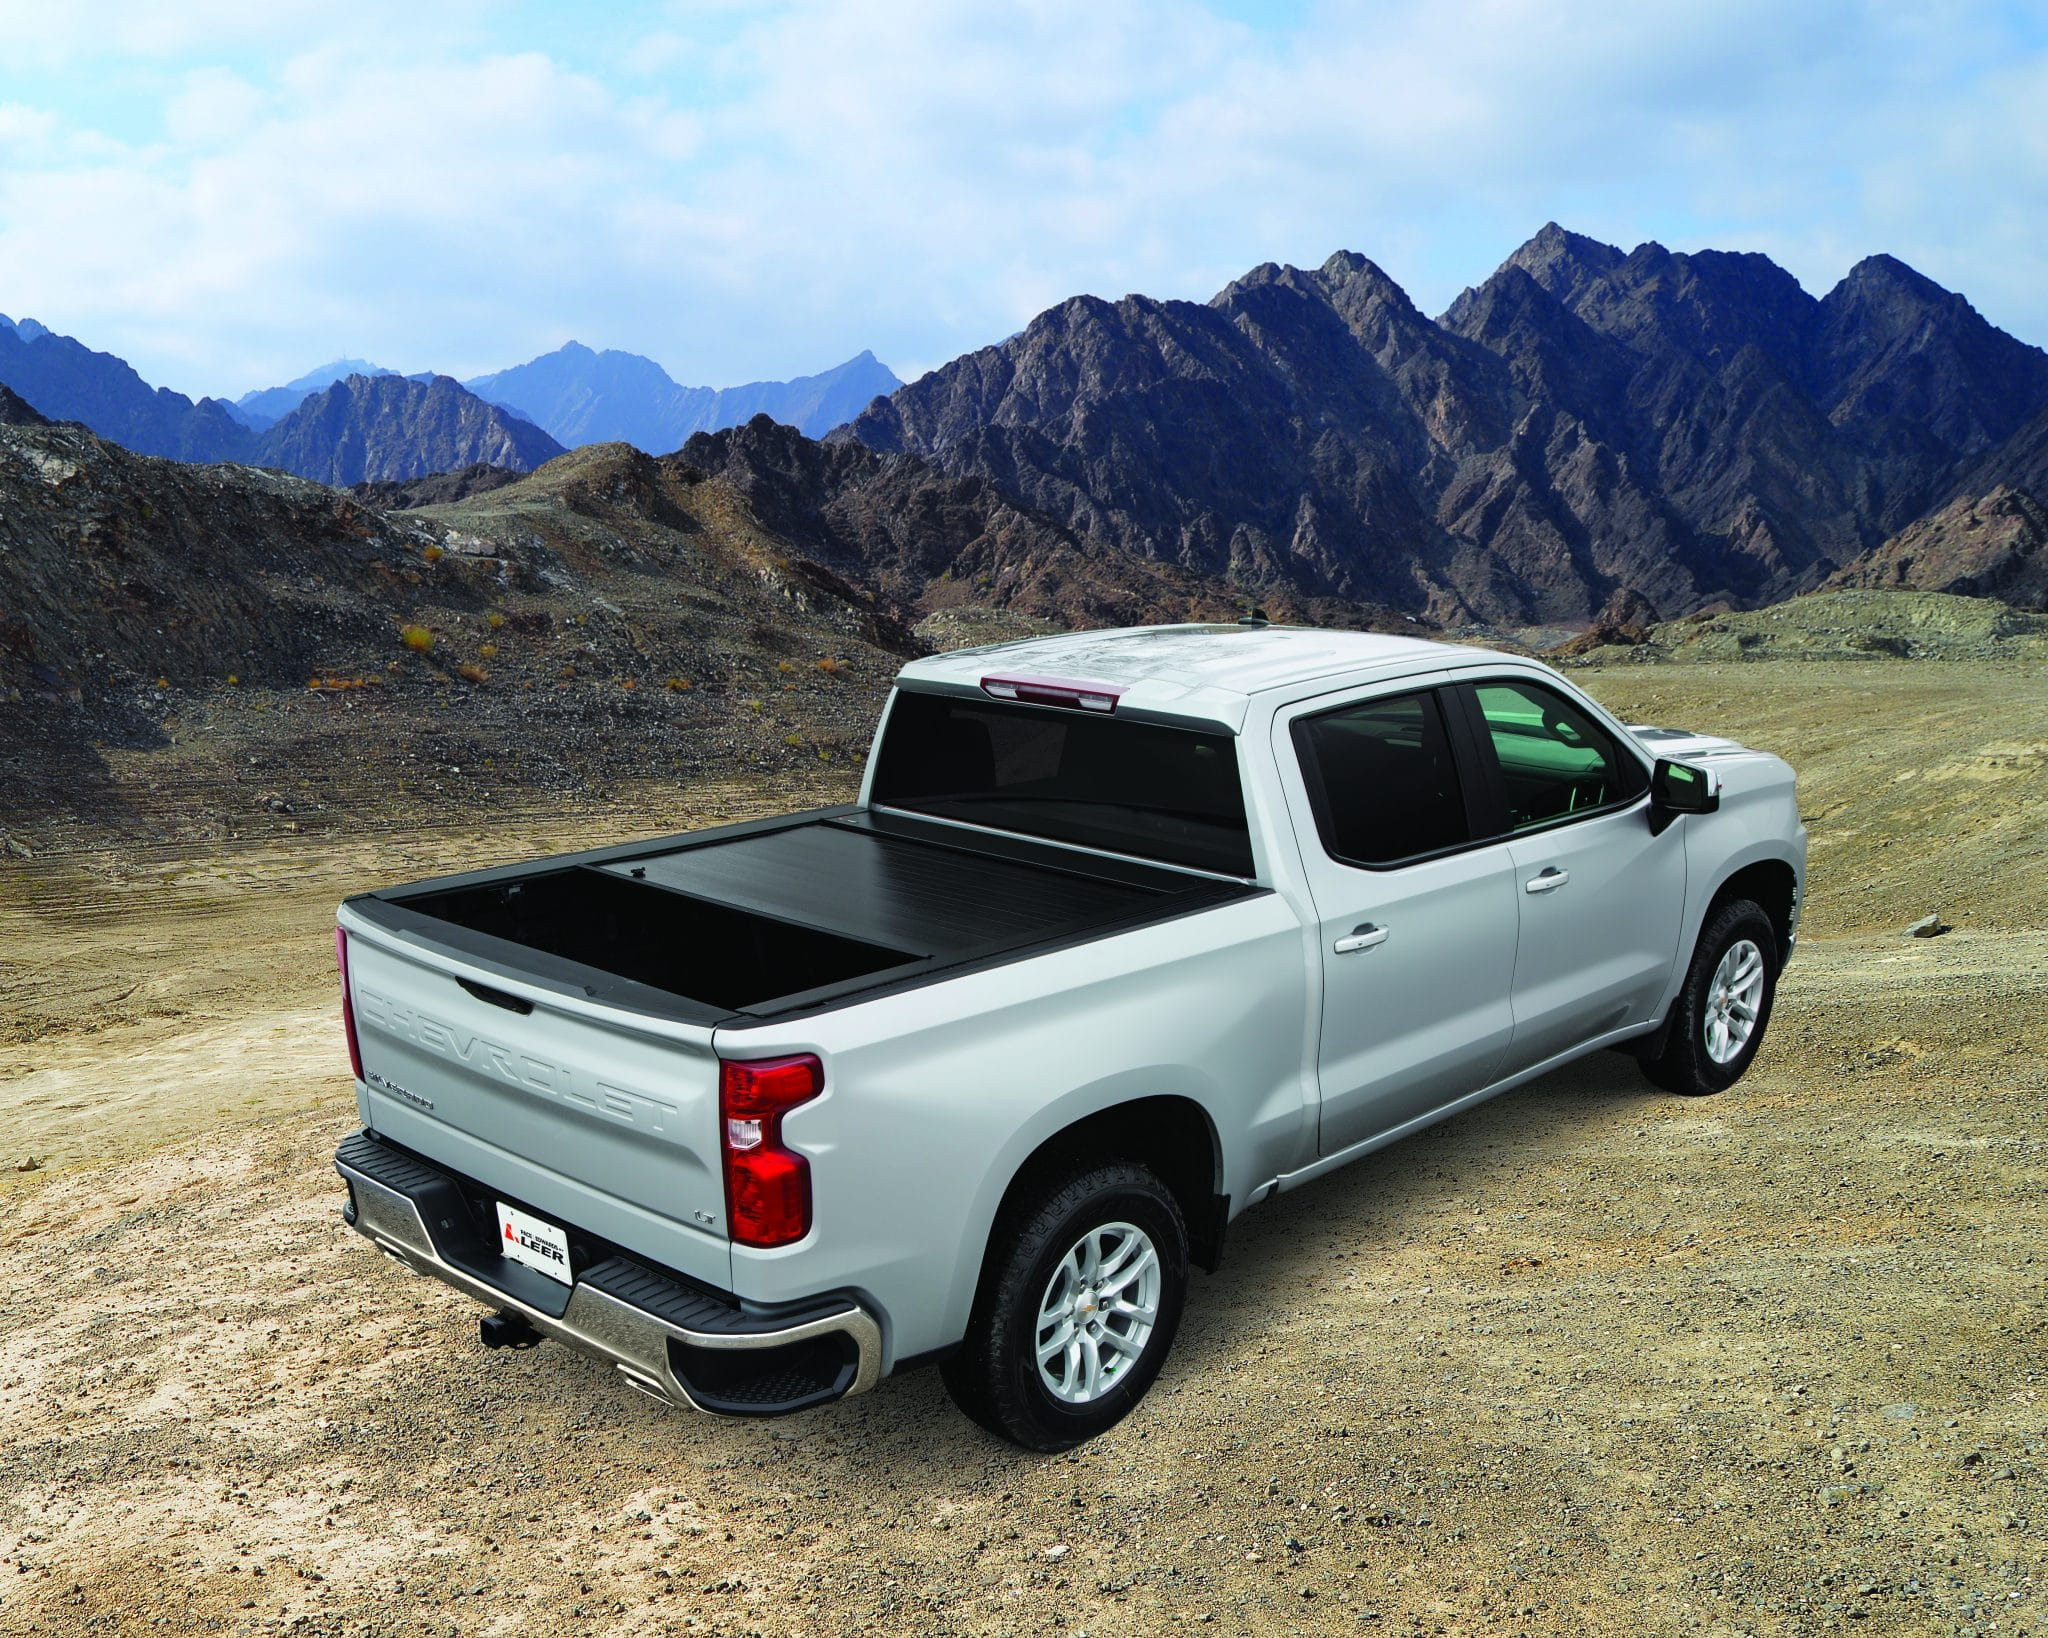 Full Metal Jackrabbit: The Ultimate Work and Sport Truck Bed Cover